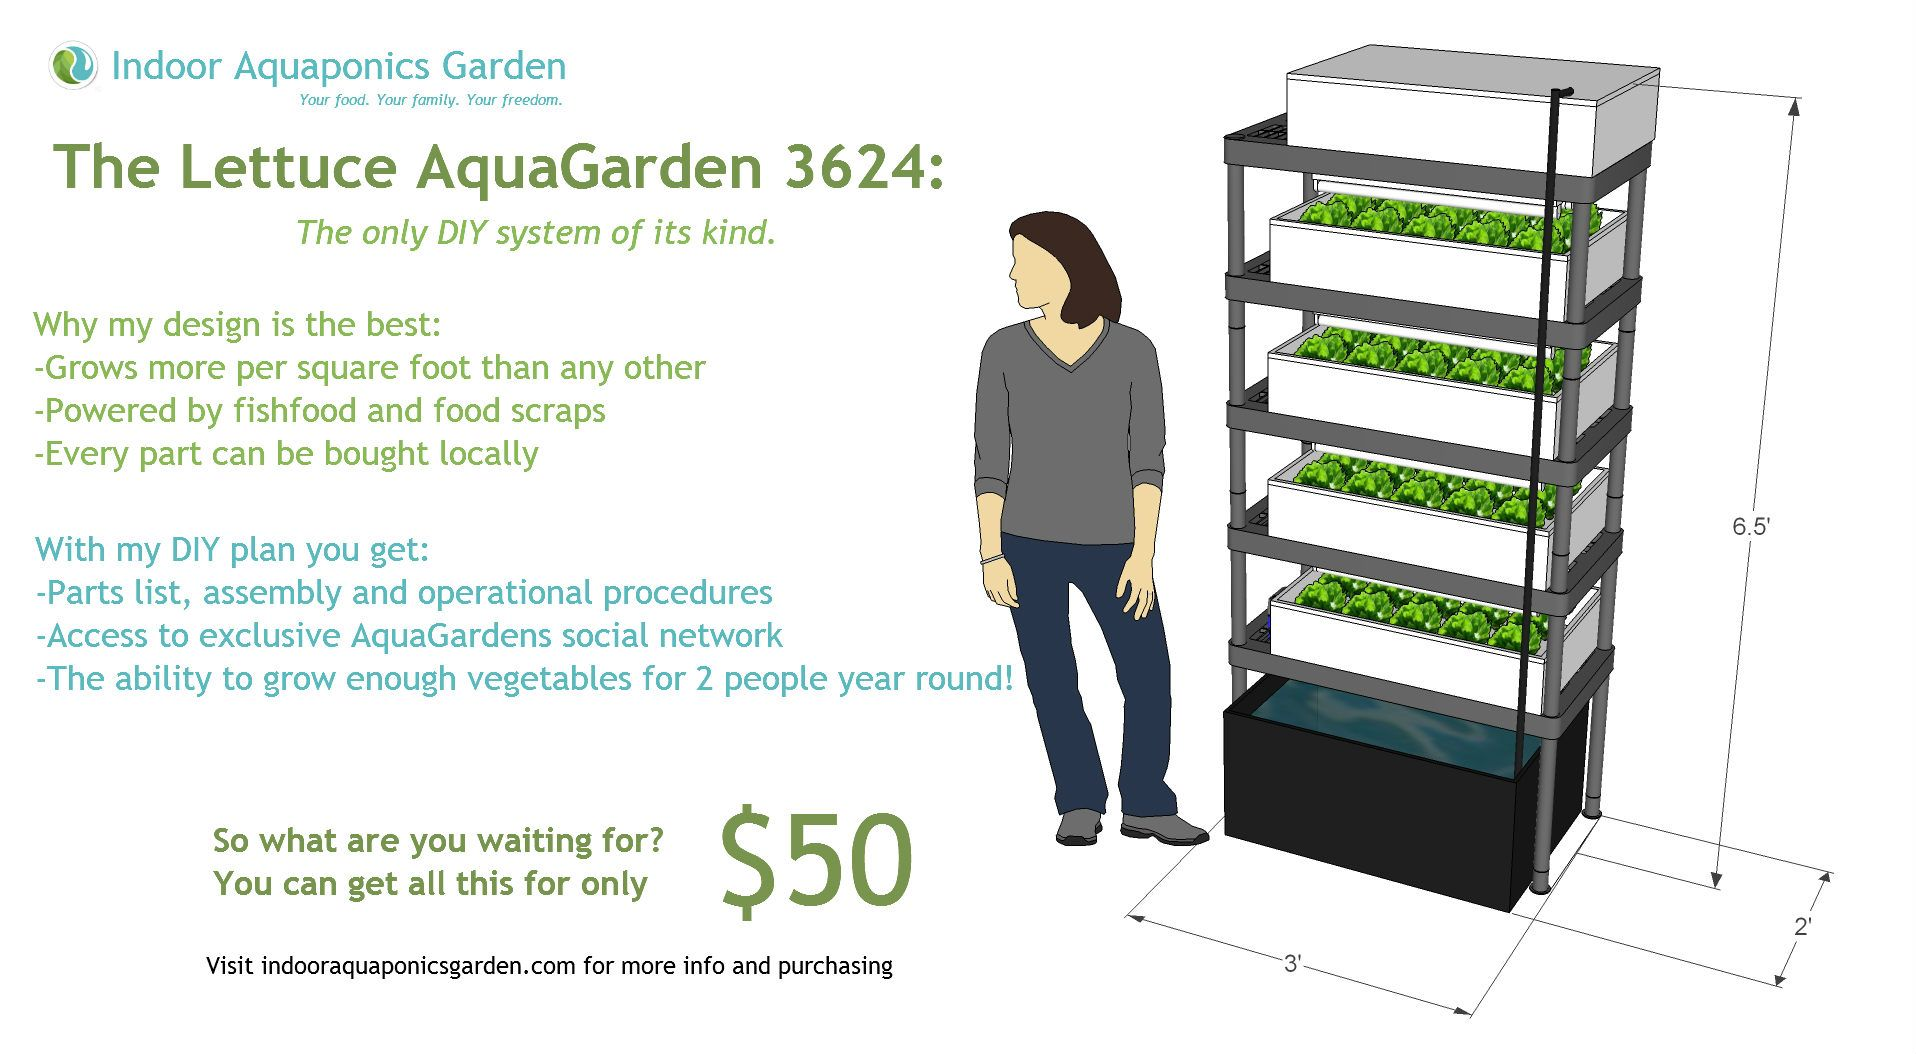 Diy Aquaponics Plans Diy Plans For Awesome Indoor